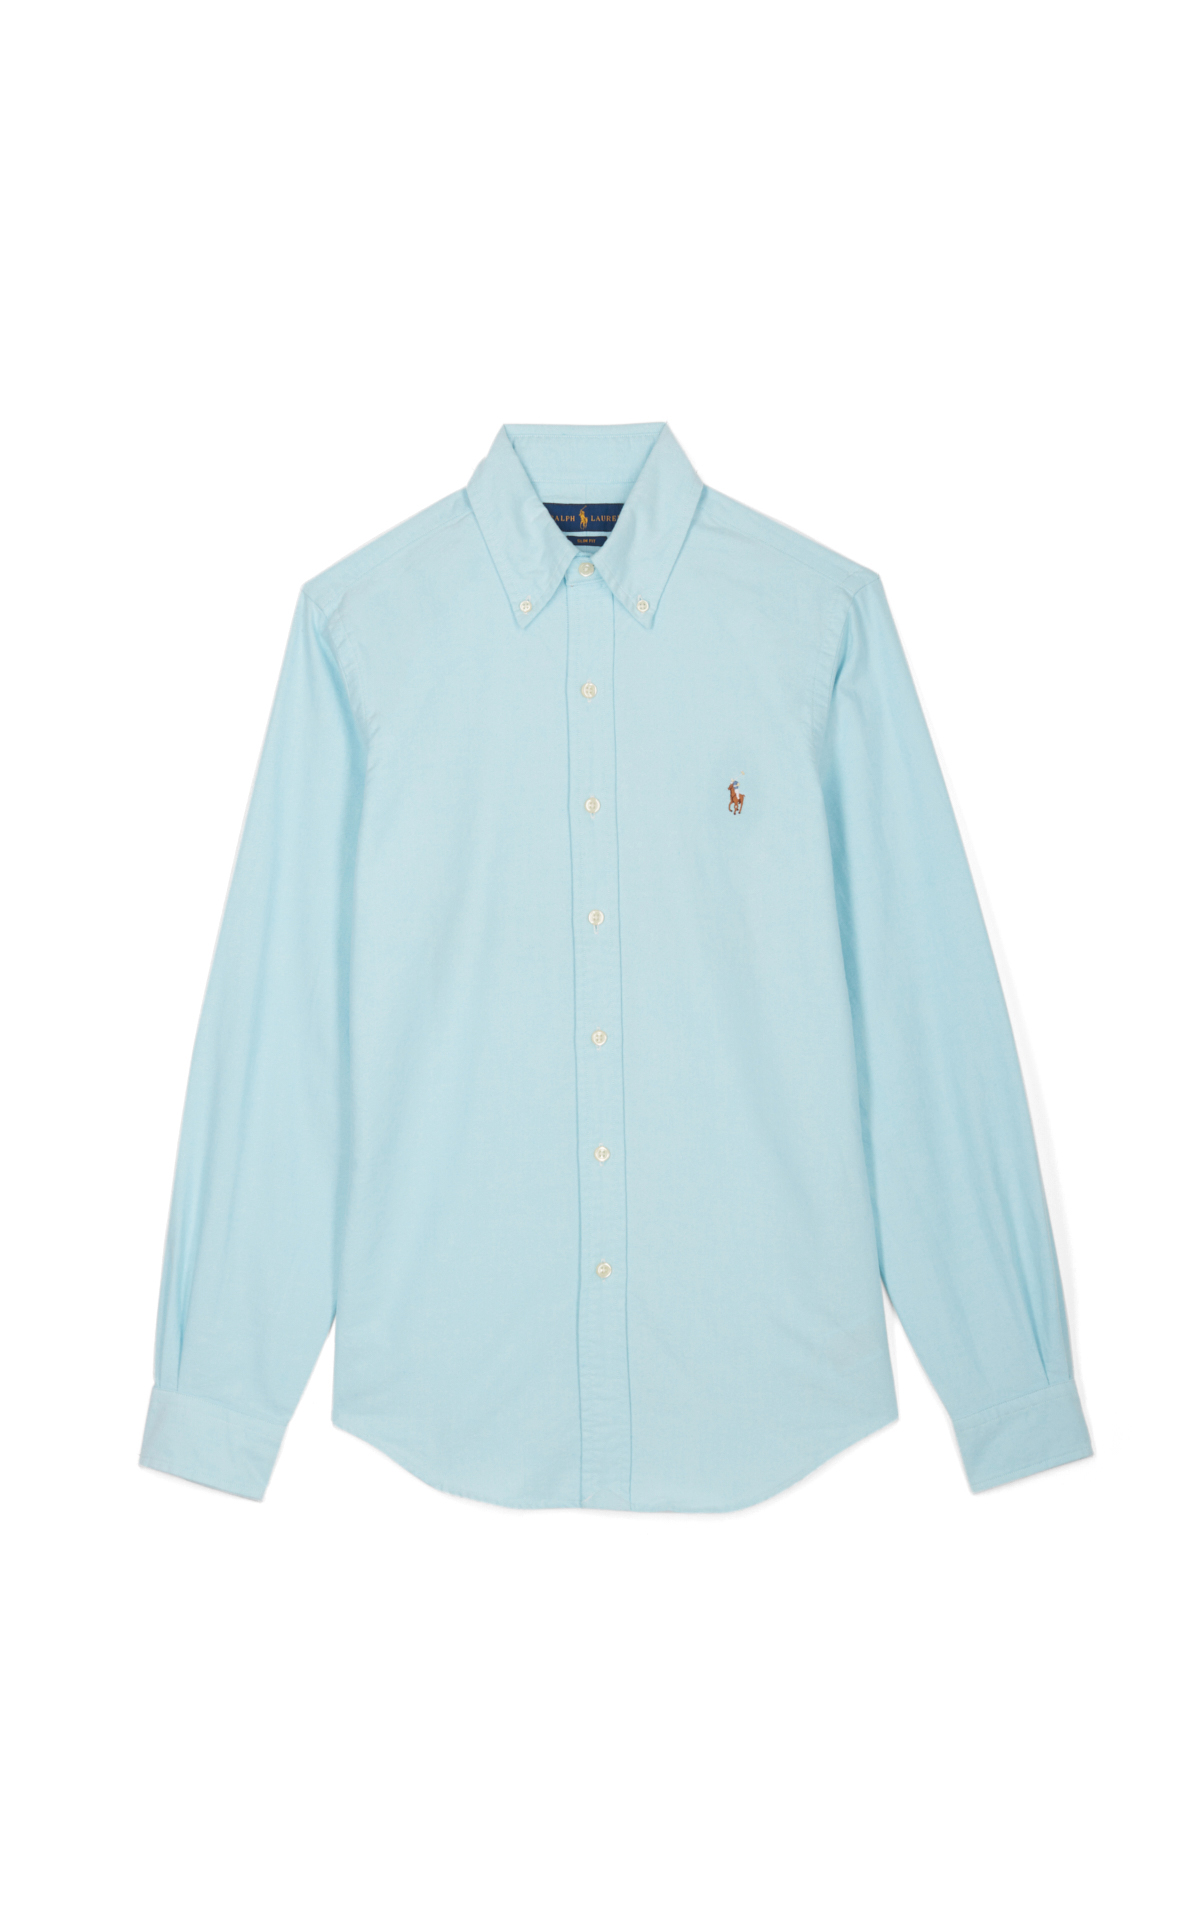 Polo Ralph Lauren Blue slim fit shirt*